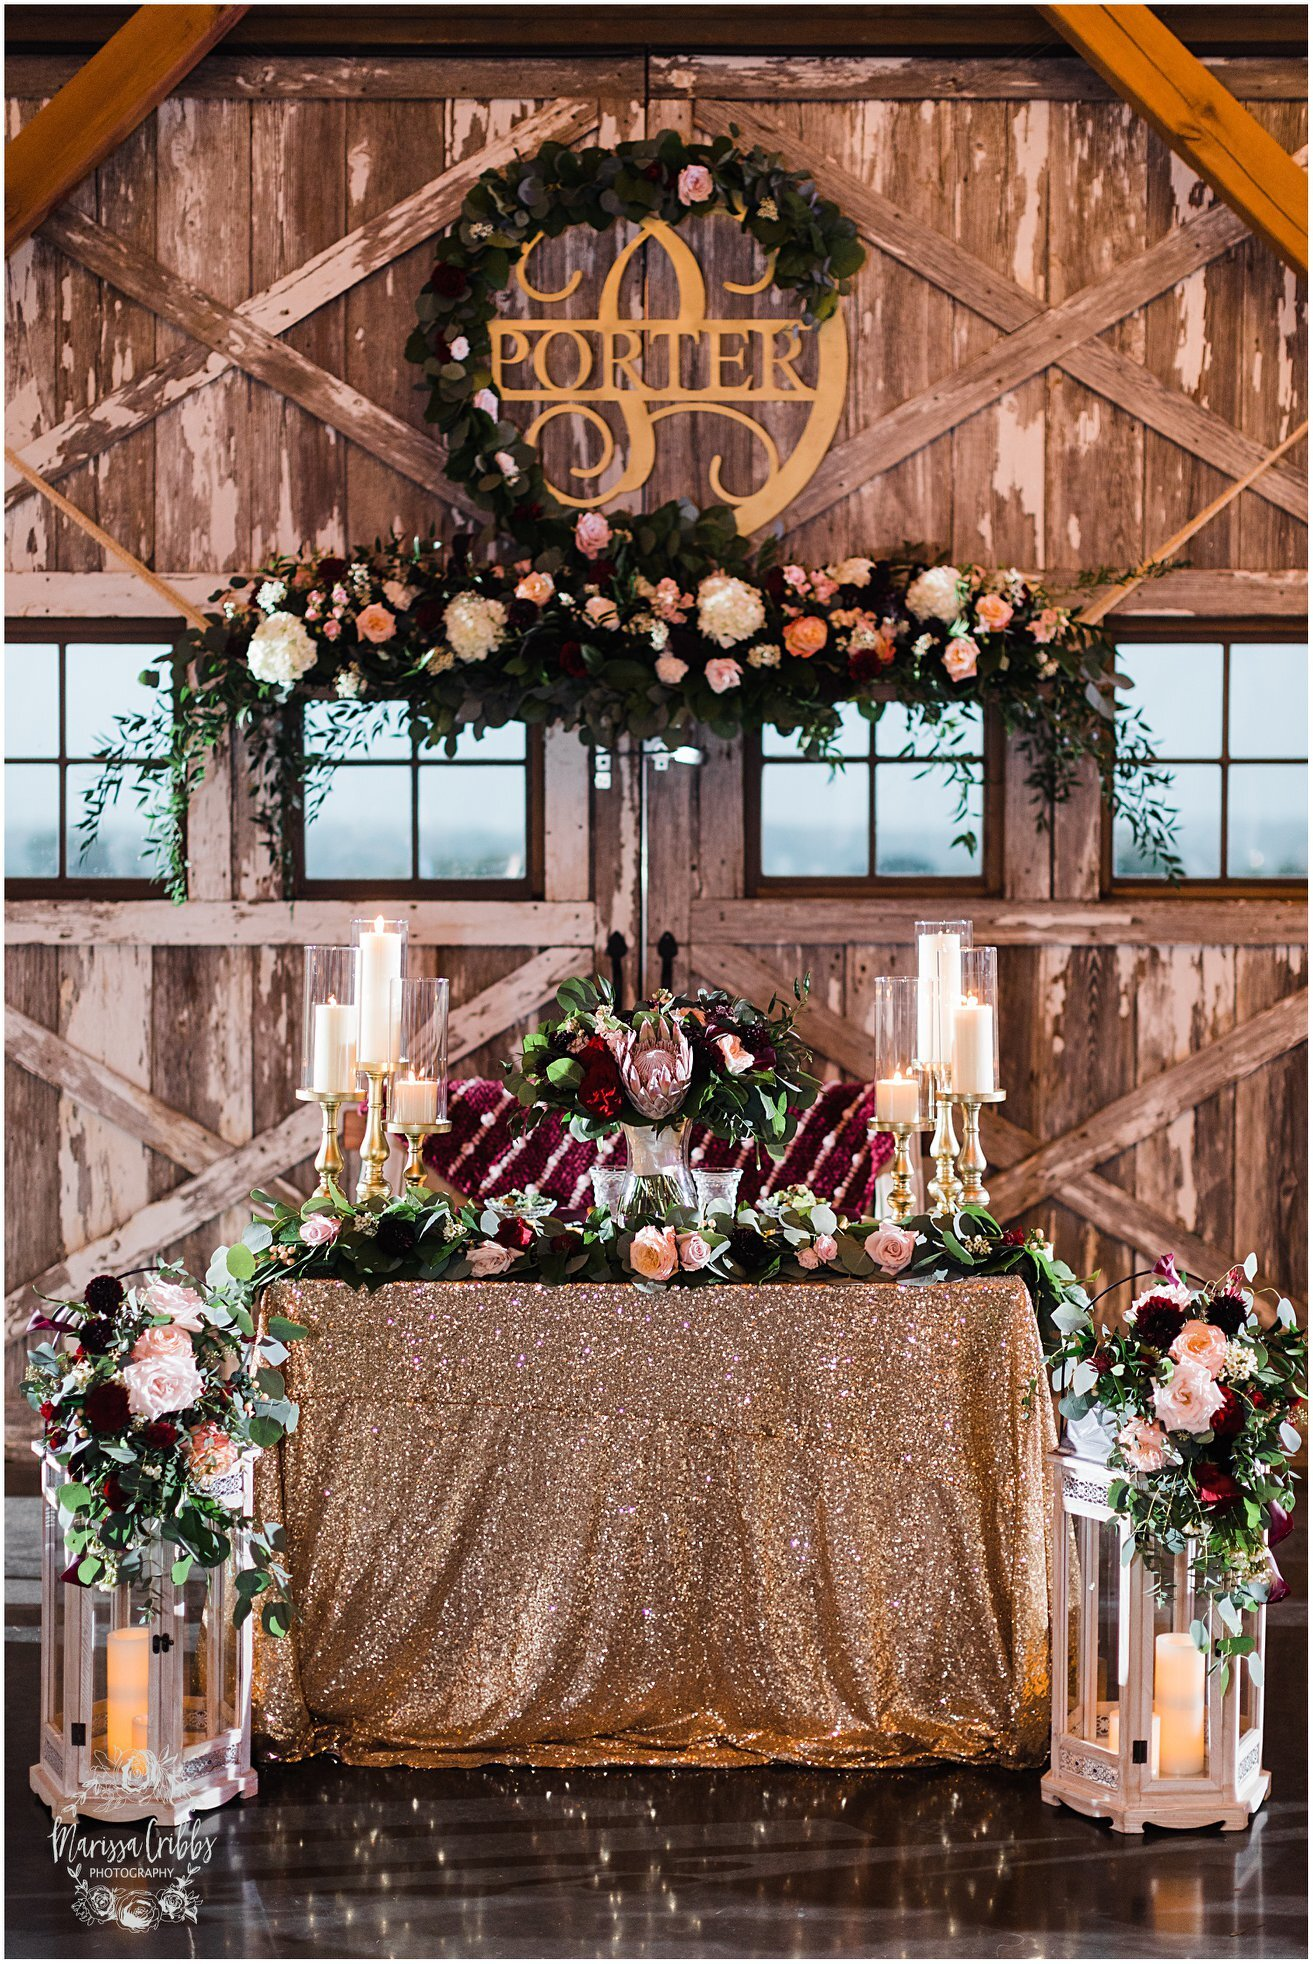 Bride & Groom Table - Marrisa Cribbs Photography